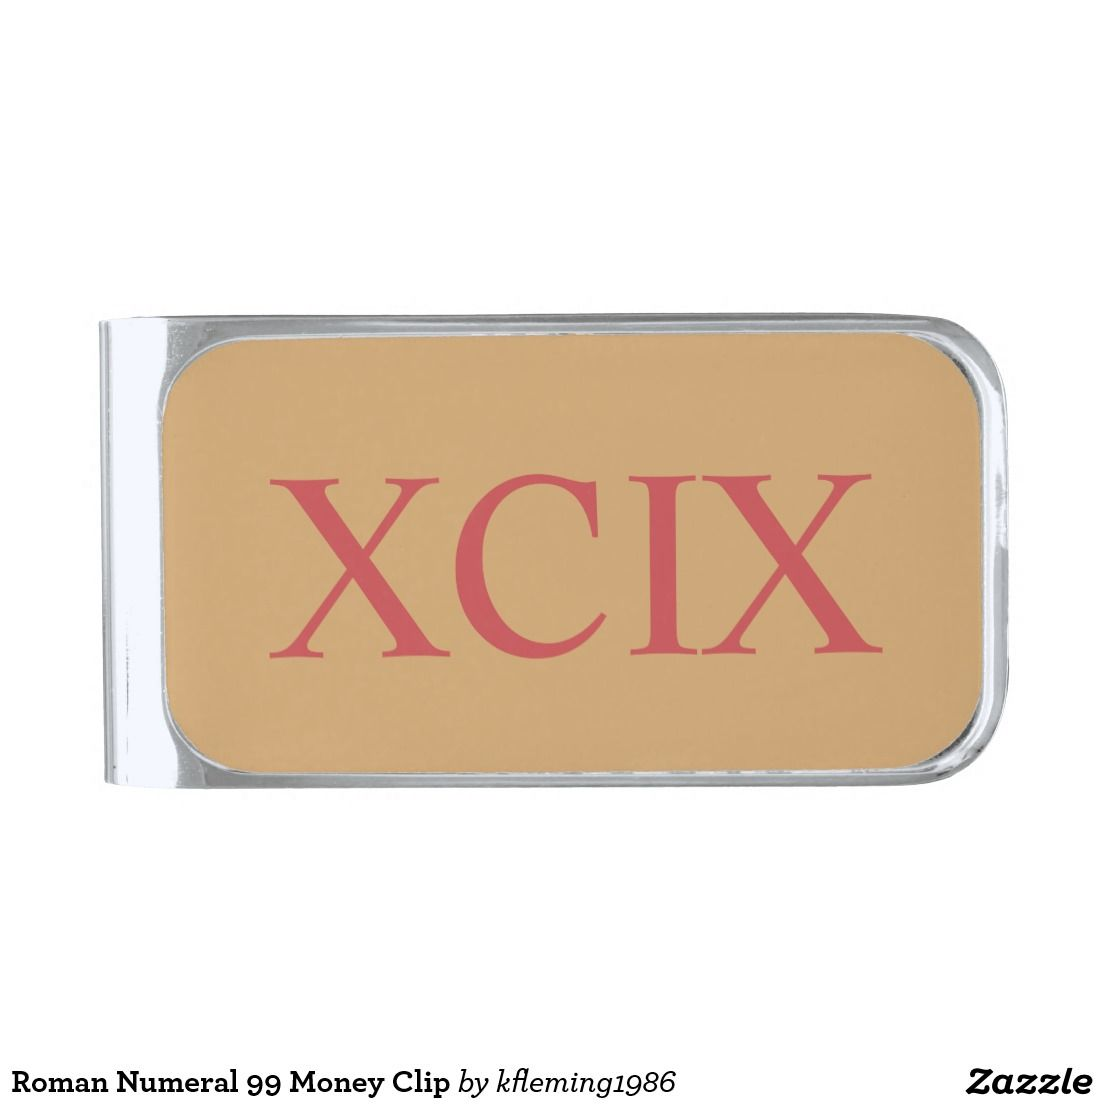 Roman Numeral 99 Money Clip